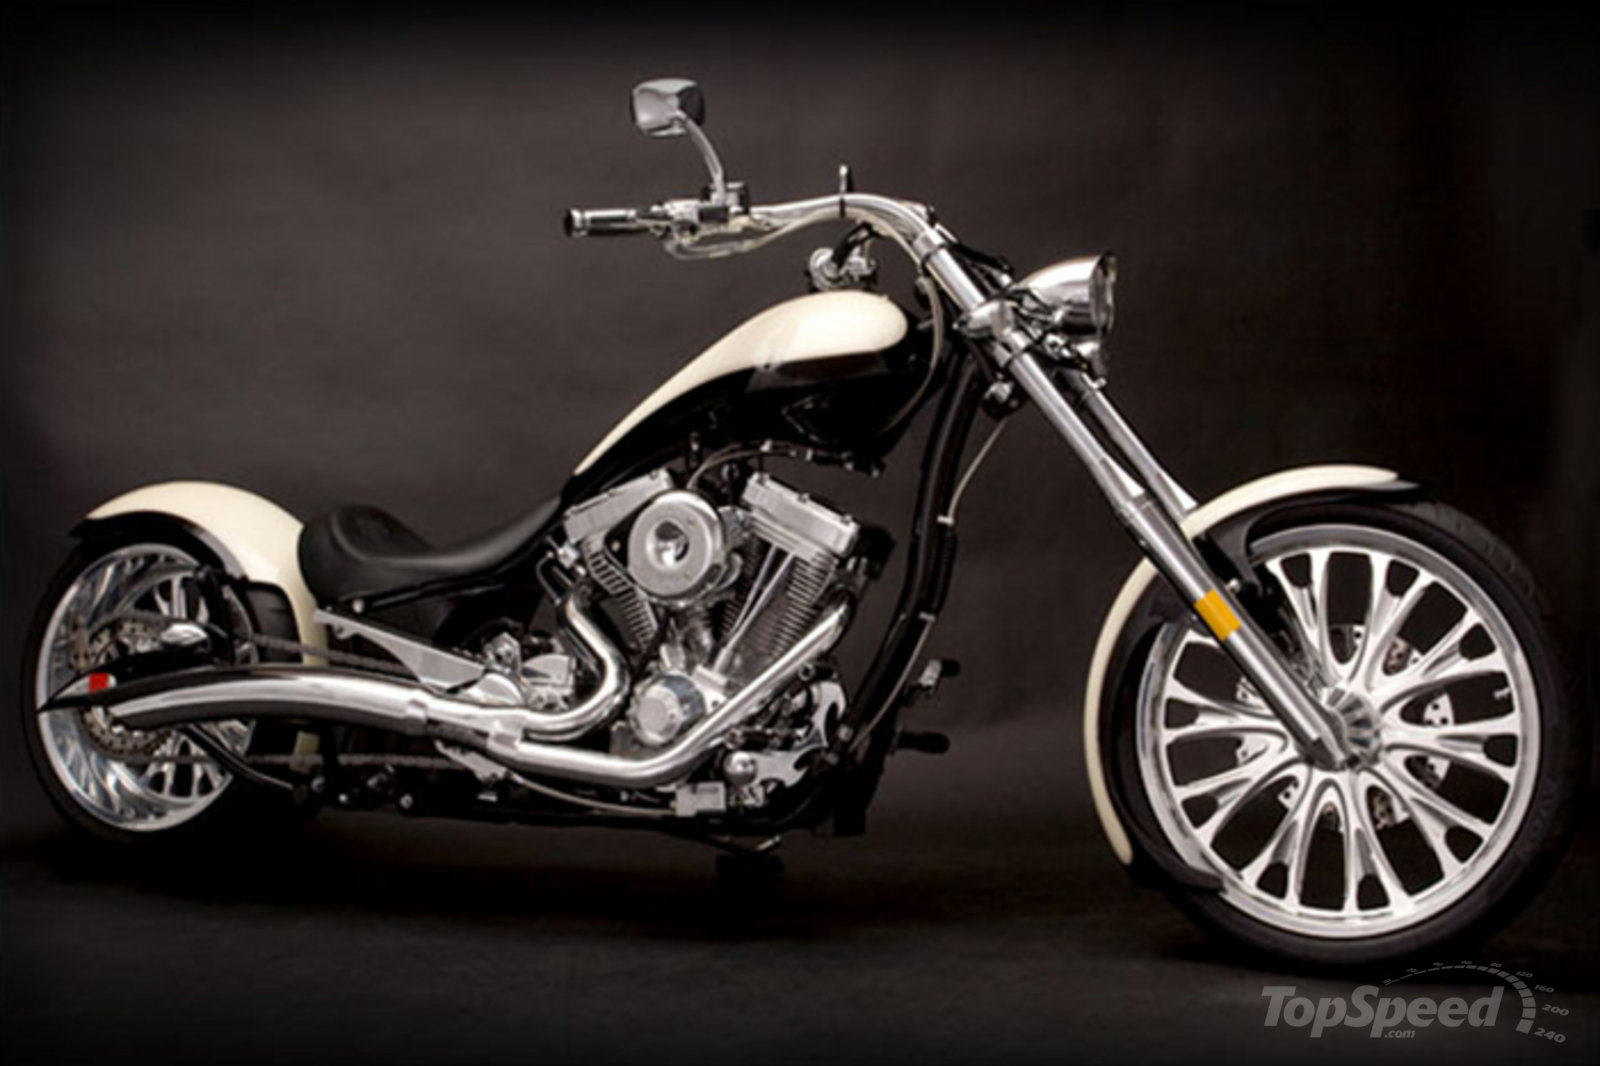 Big Bear Choppers Devils Advocate motorcycles for sale   Big Bear Choppers